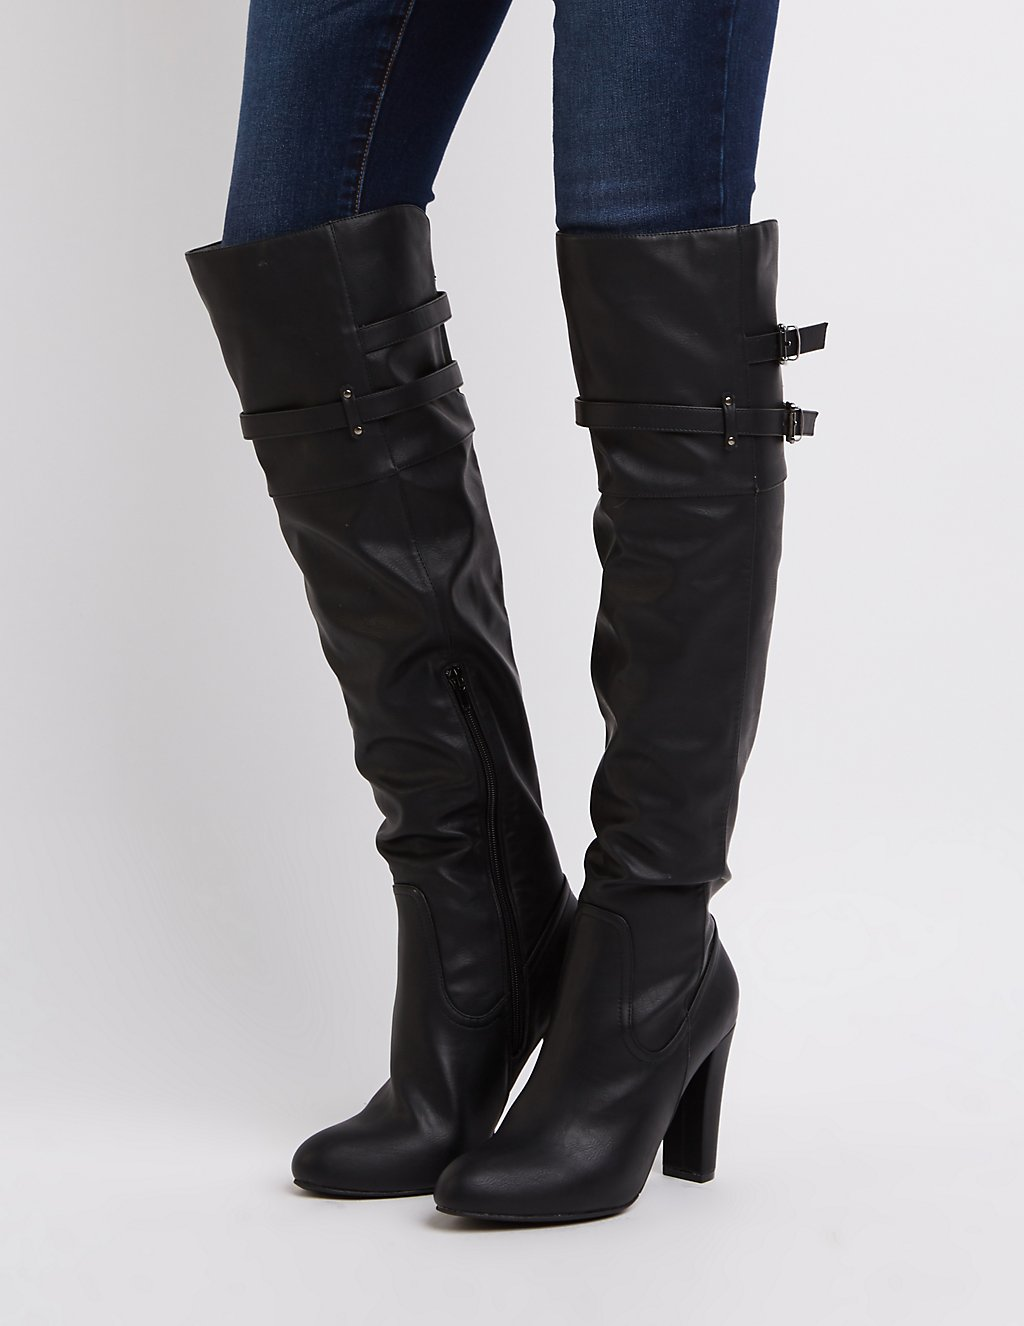 Thigh High Boots & Over the Knee Boots | Charlotte Russe